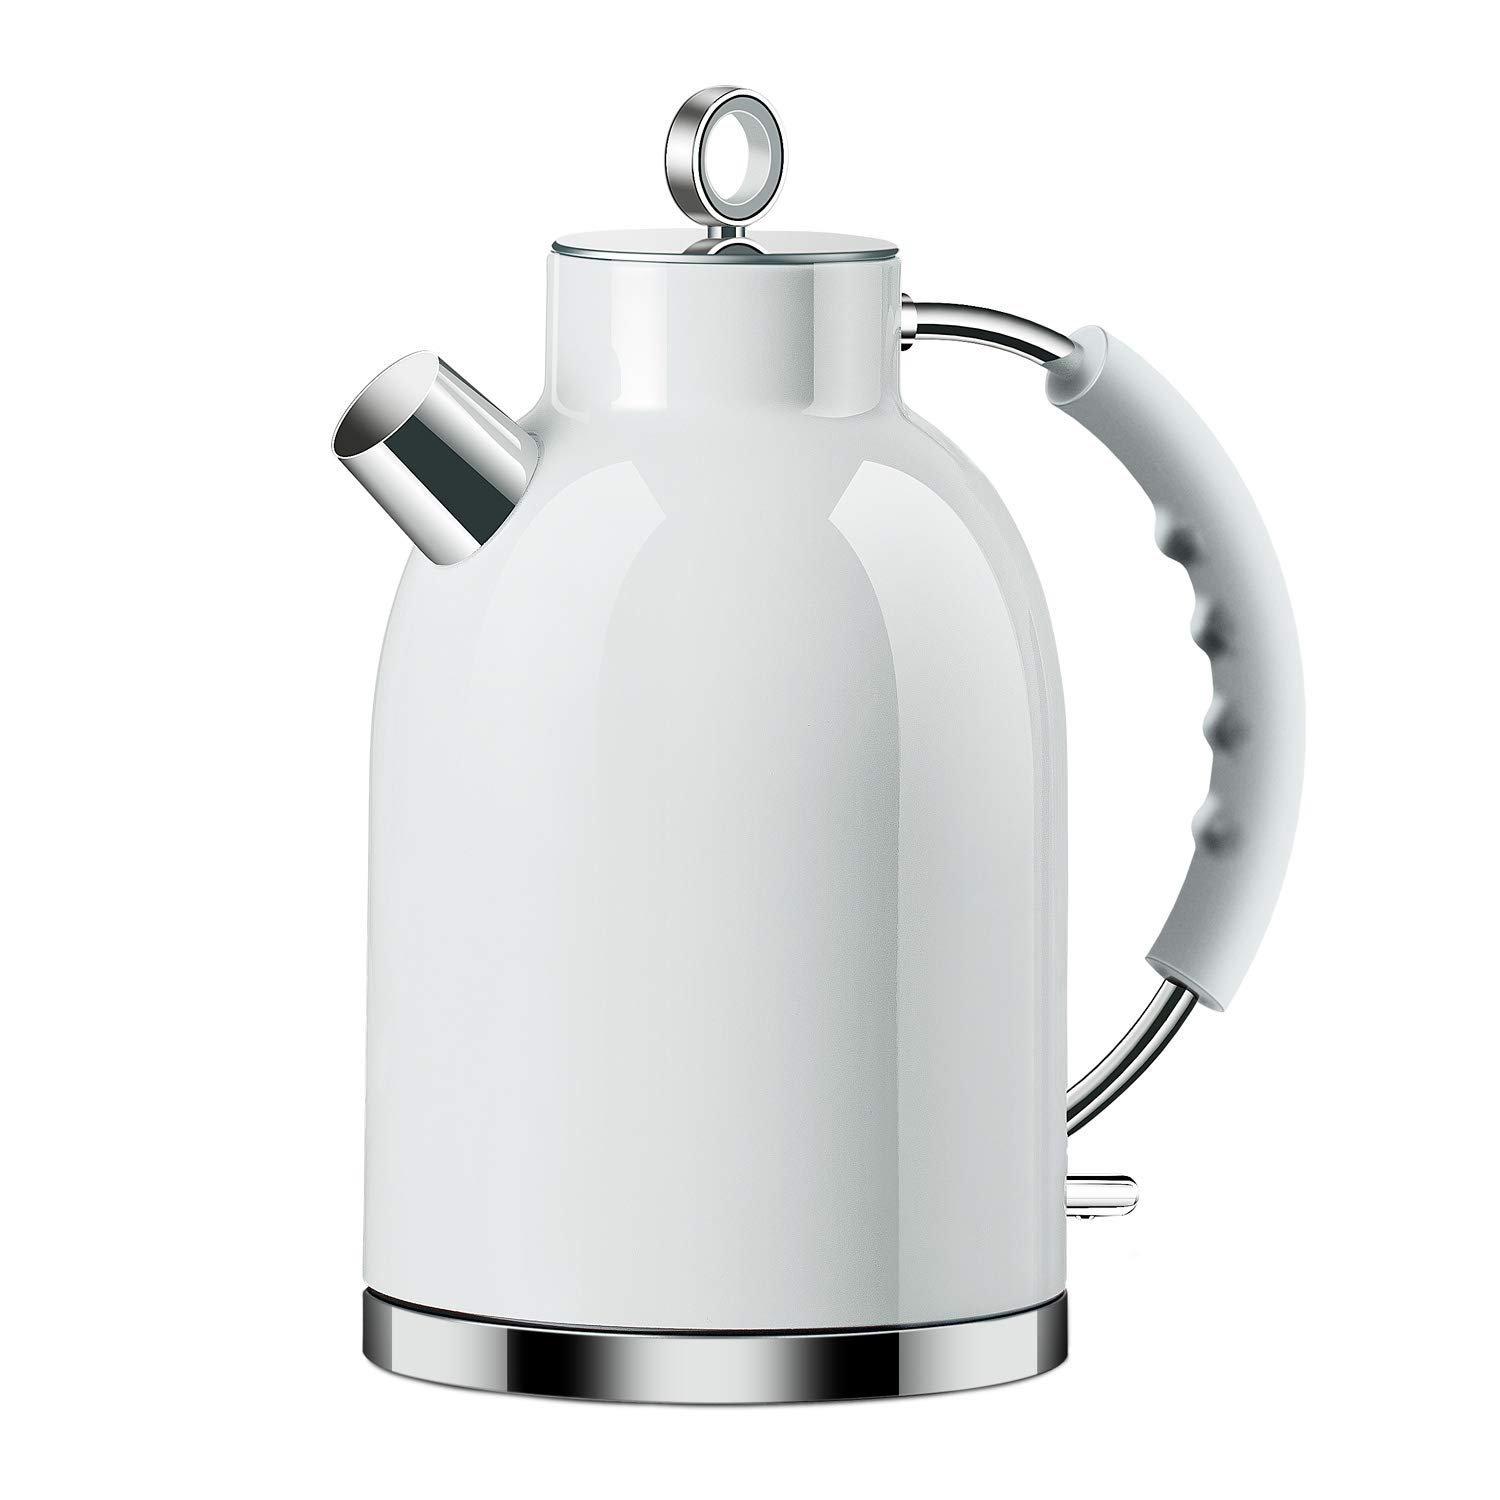 Electric Kettle, ASCOT Stainless Steel Electric Tea Kettle, 1.7QT, 1500W, BPA-Free, Cordless, Automatic Shutoff, Fast Boiling Water Heater - White